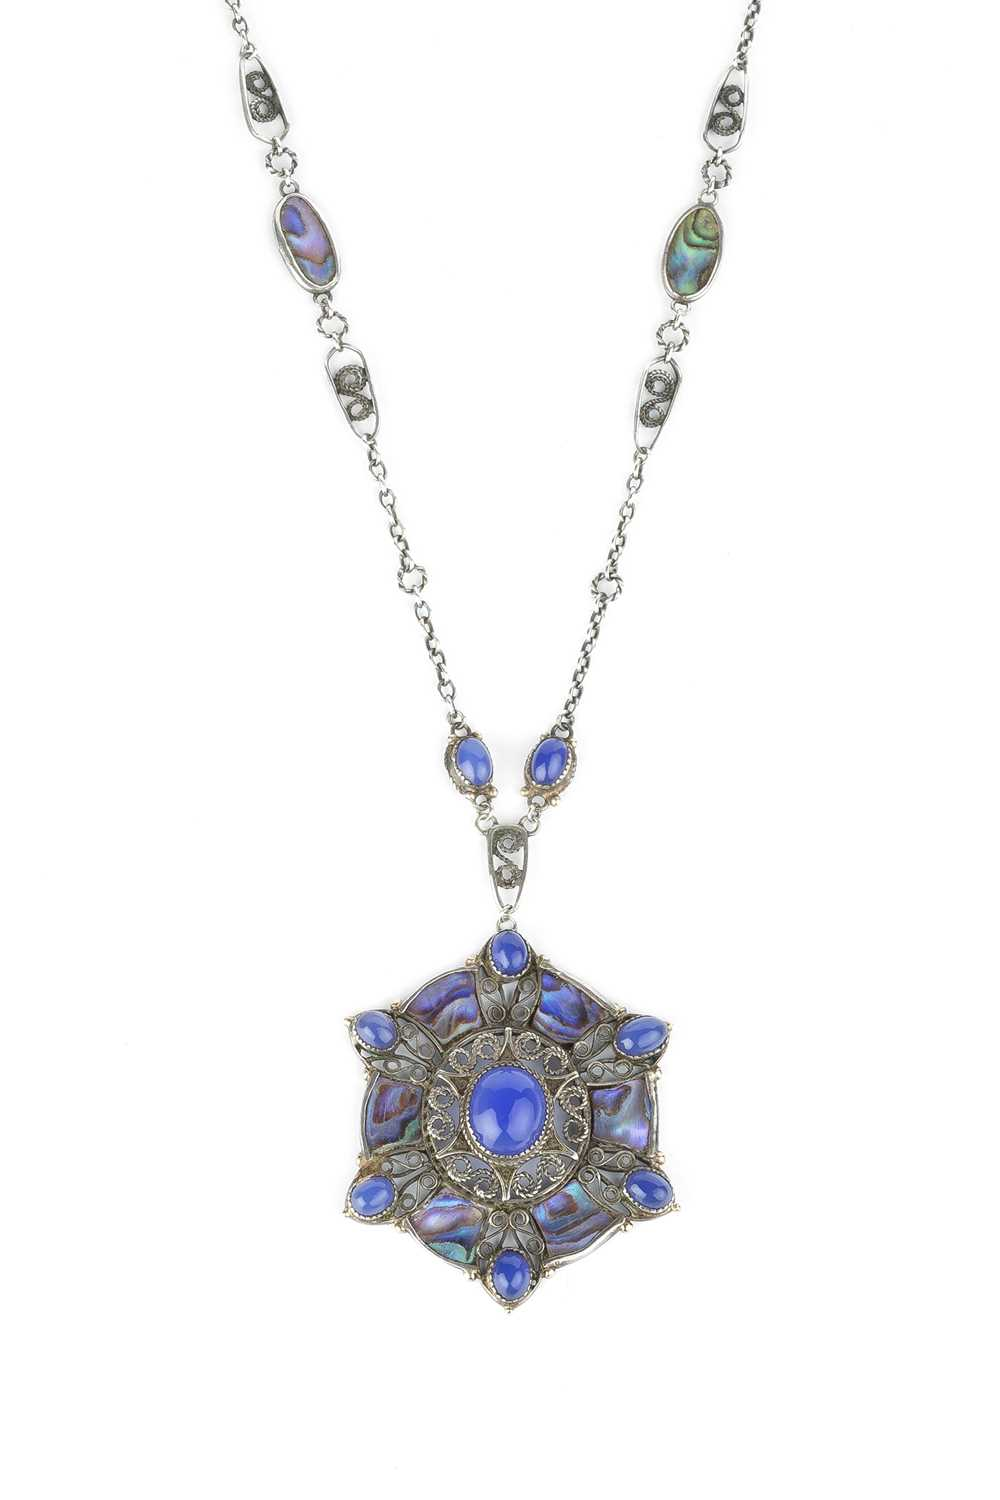 An Arts and Crafts pendant necklace, the openwork pendant designed as a cluster of oval blue stained